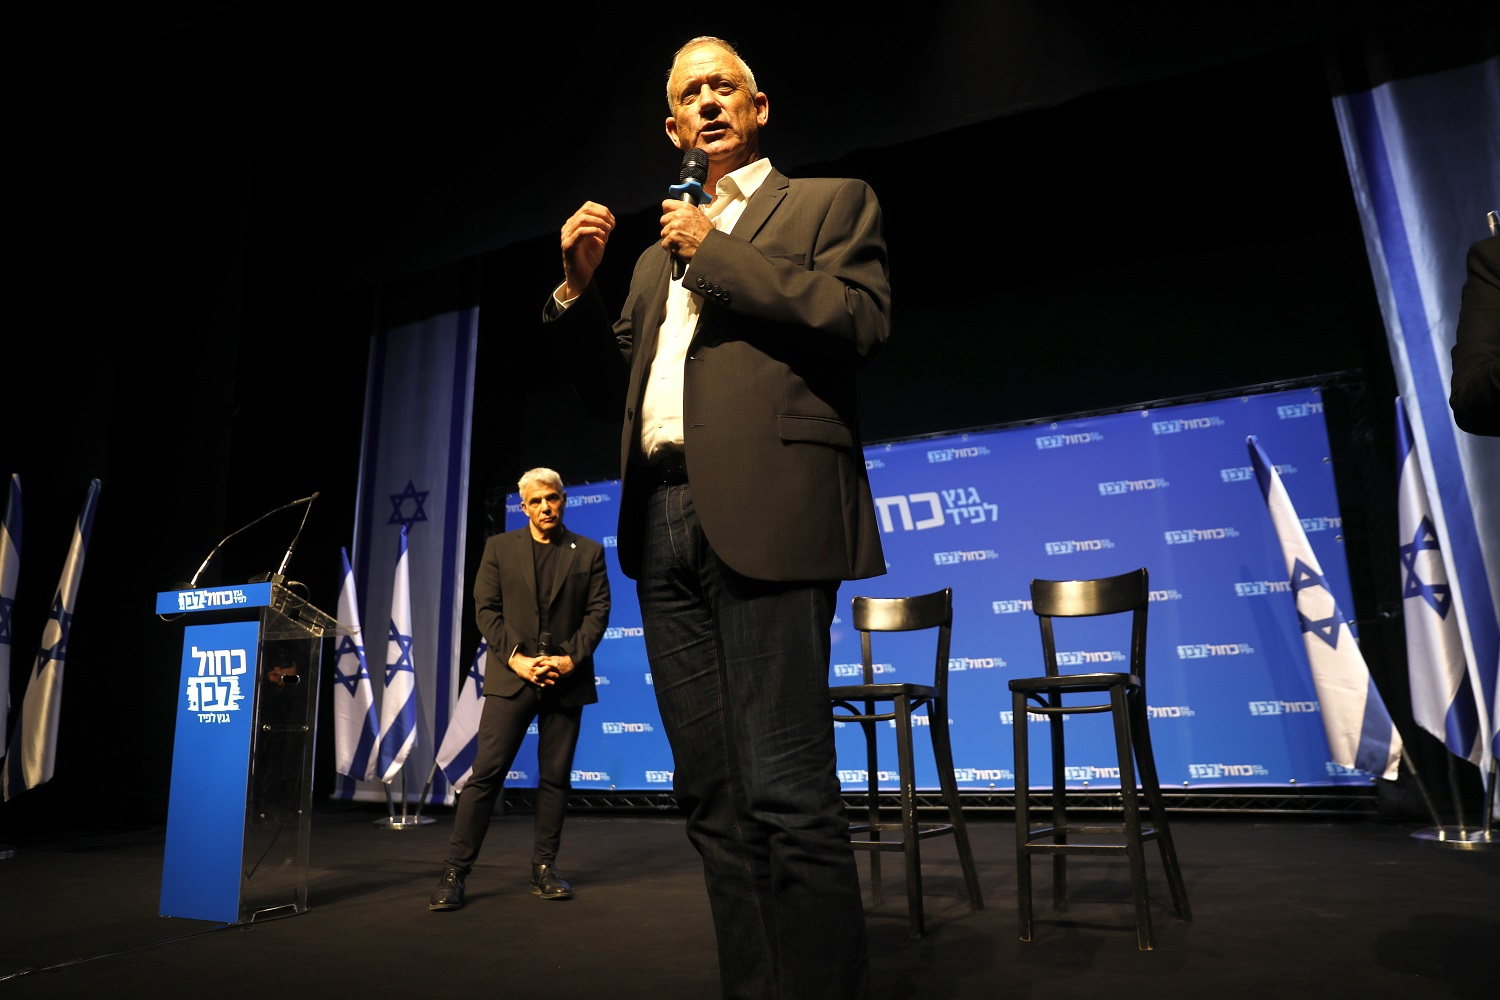 Yair Lapid (left) looks on during a speech by Benny Gantz in Beersheva in March 2019 (AFP)